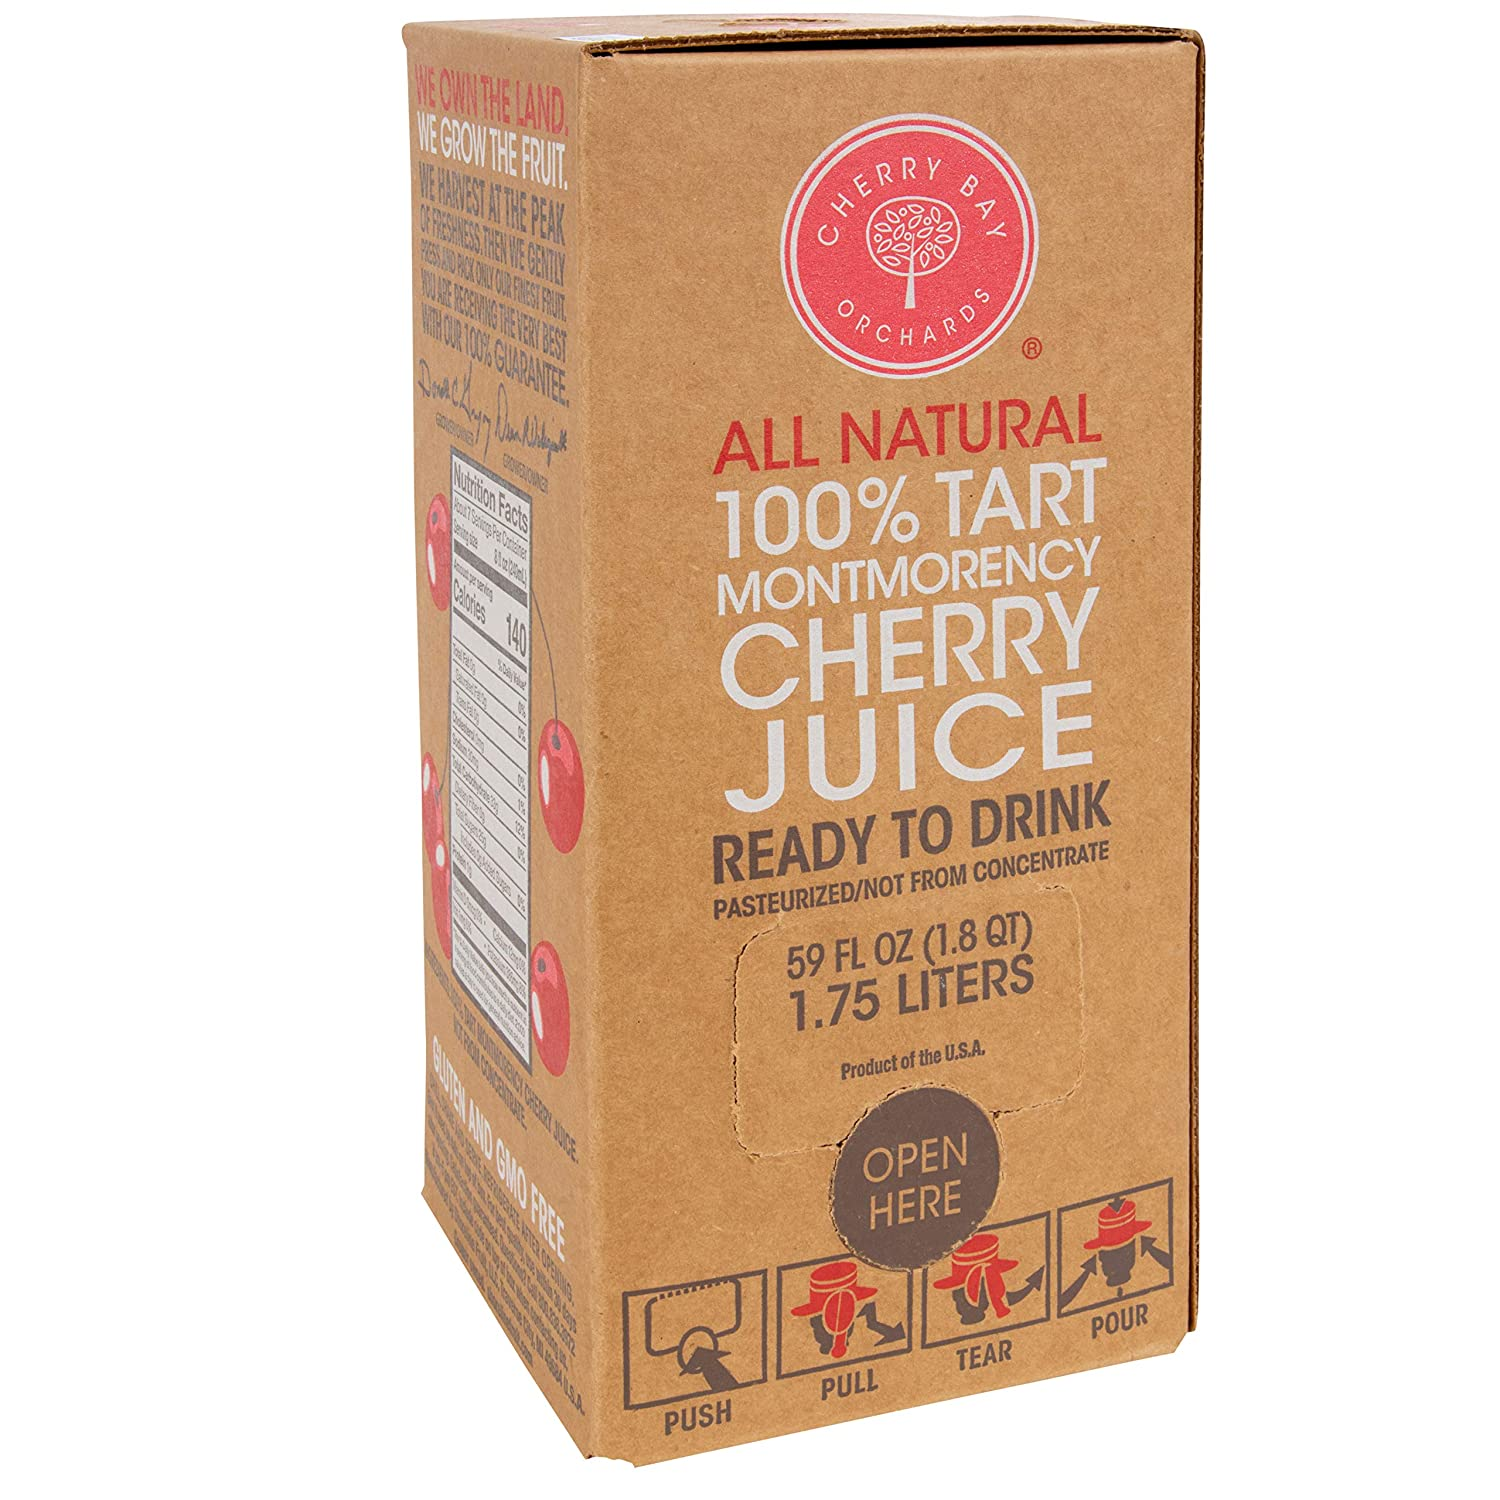 Cherry Bay Orchards - 100% Montmorency Tart Cherry Juice   Six Pack - 59 oz bag in a box   Not from concentrate   All Natural Ingredients, Gluten Free, GMO Free, Natural Antioxidants, No Added Sugar